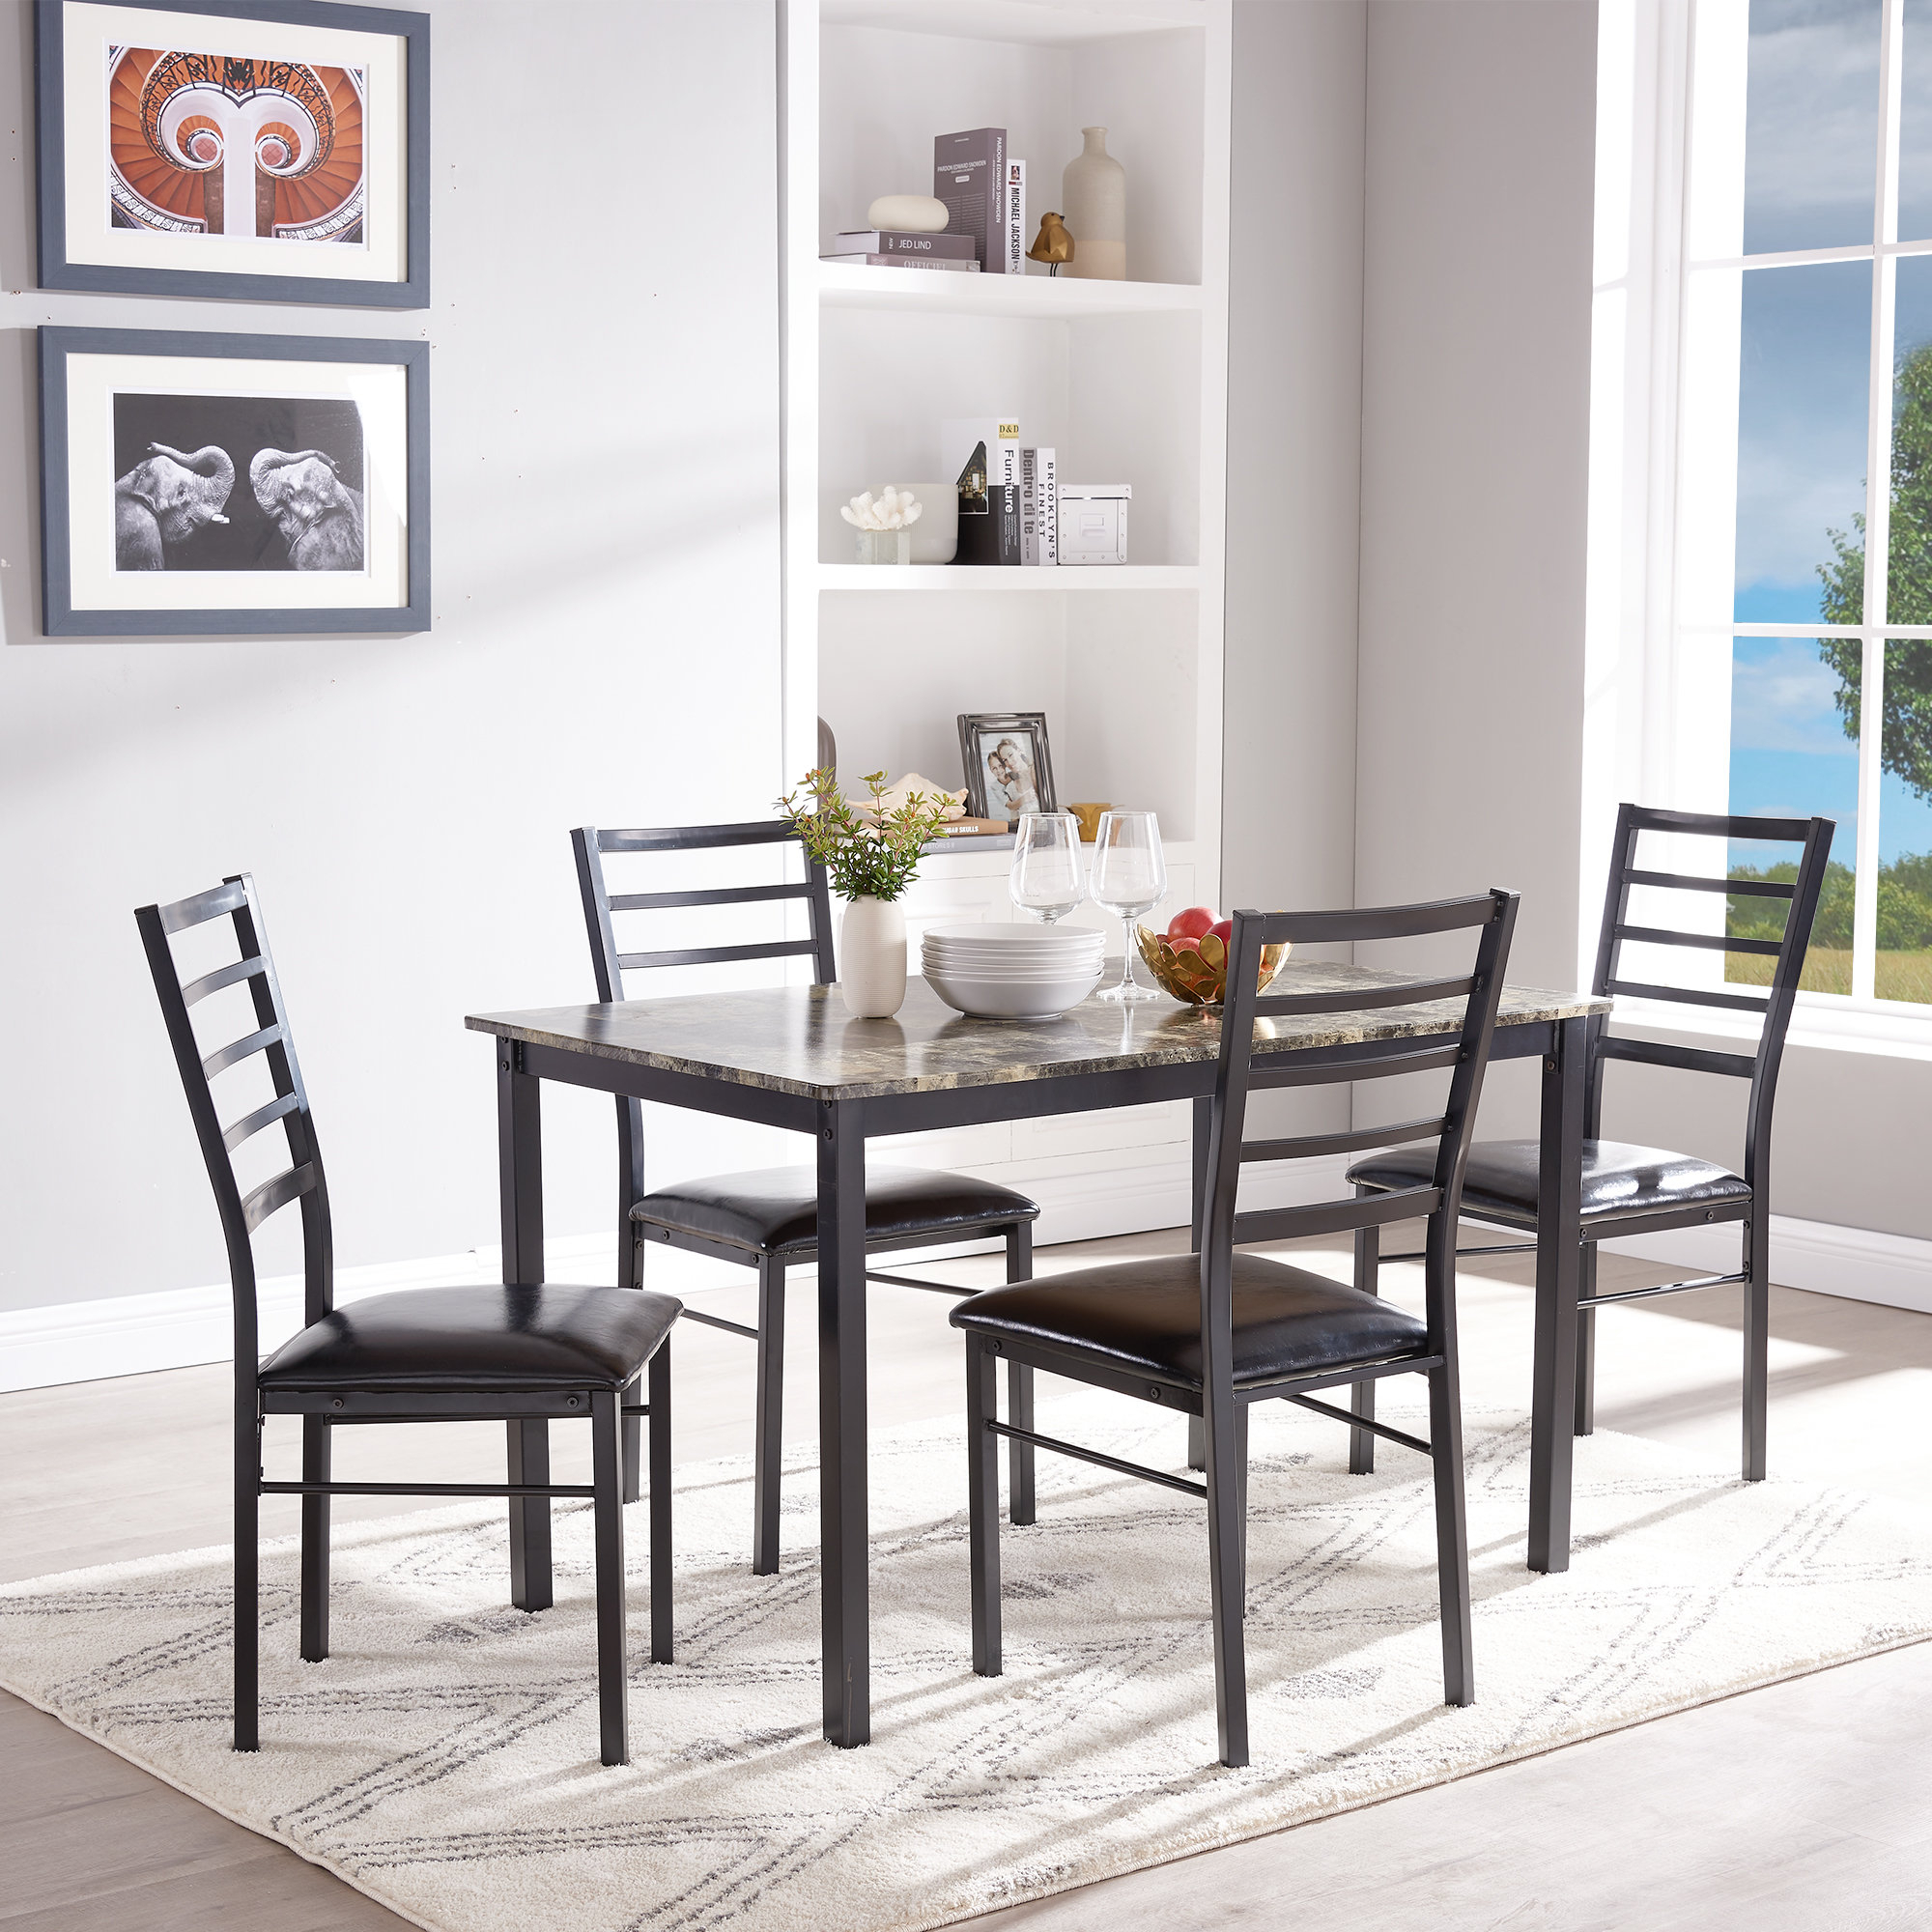 Mukai 5 Piece Dining Set In Recent Taulbee 5 Piece Dining Sets (View 3 of 20)